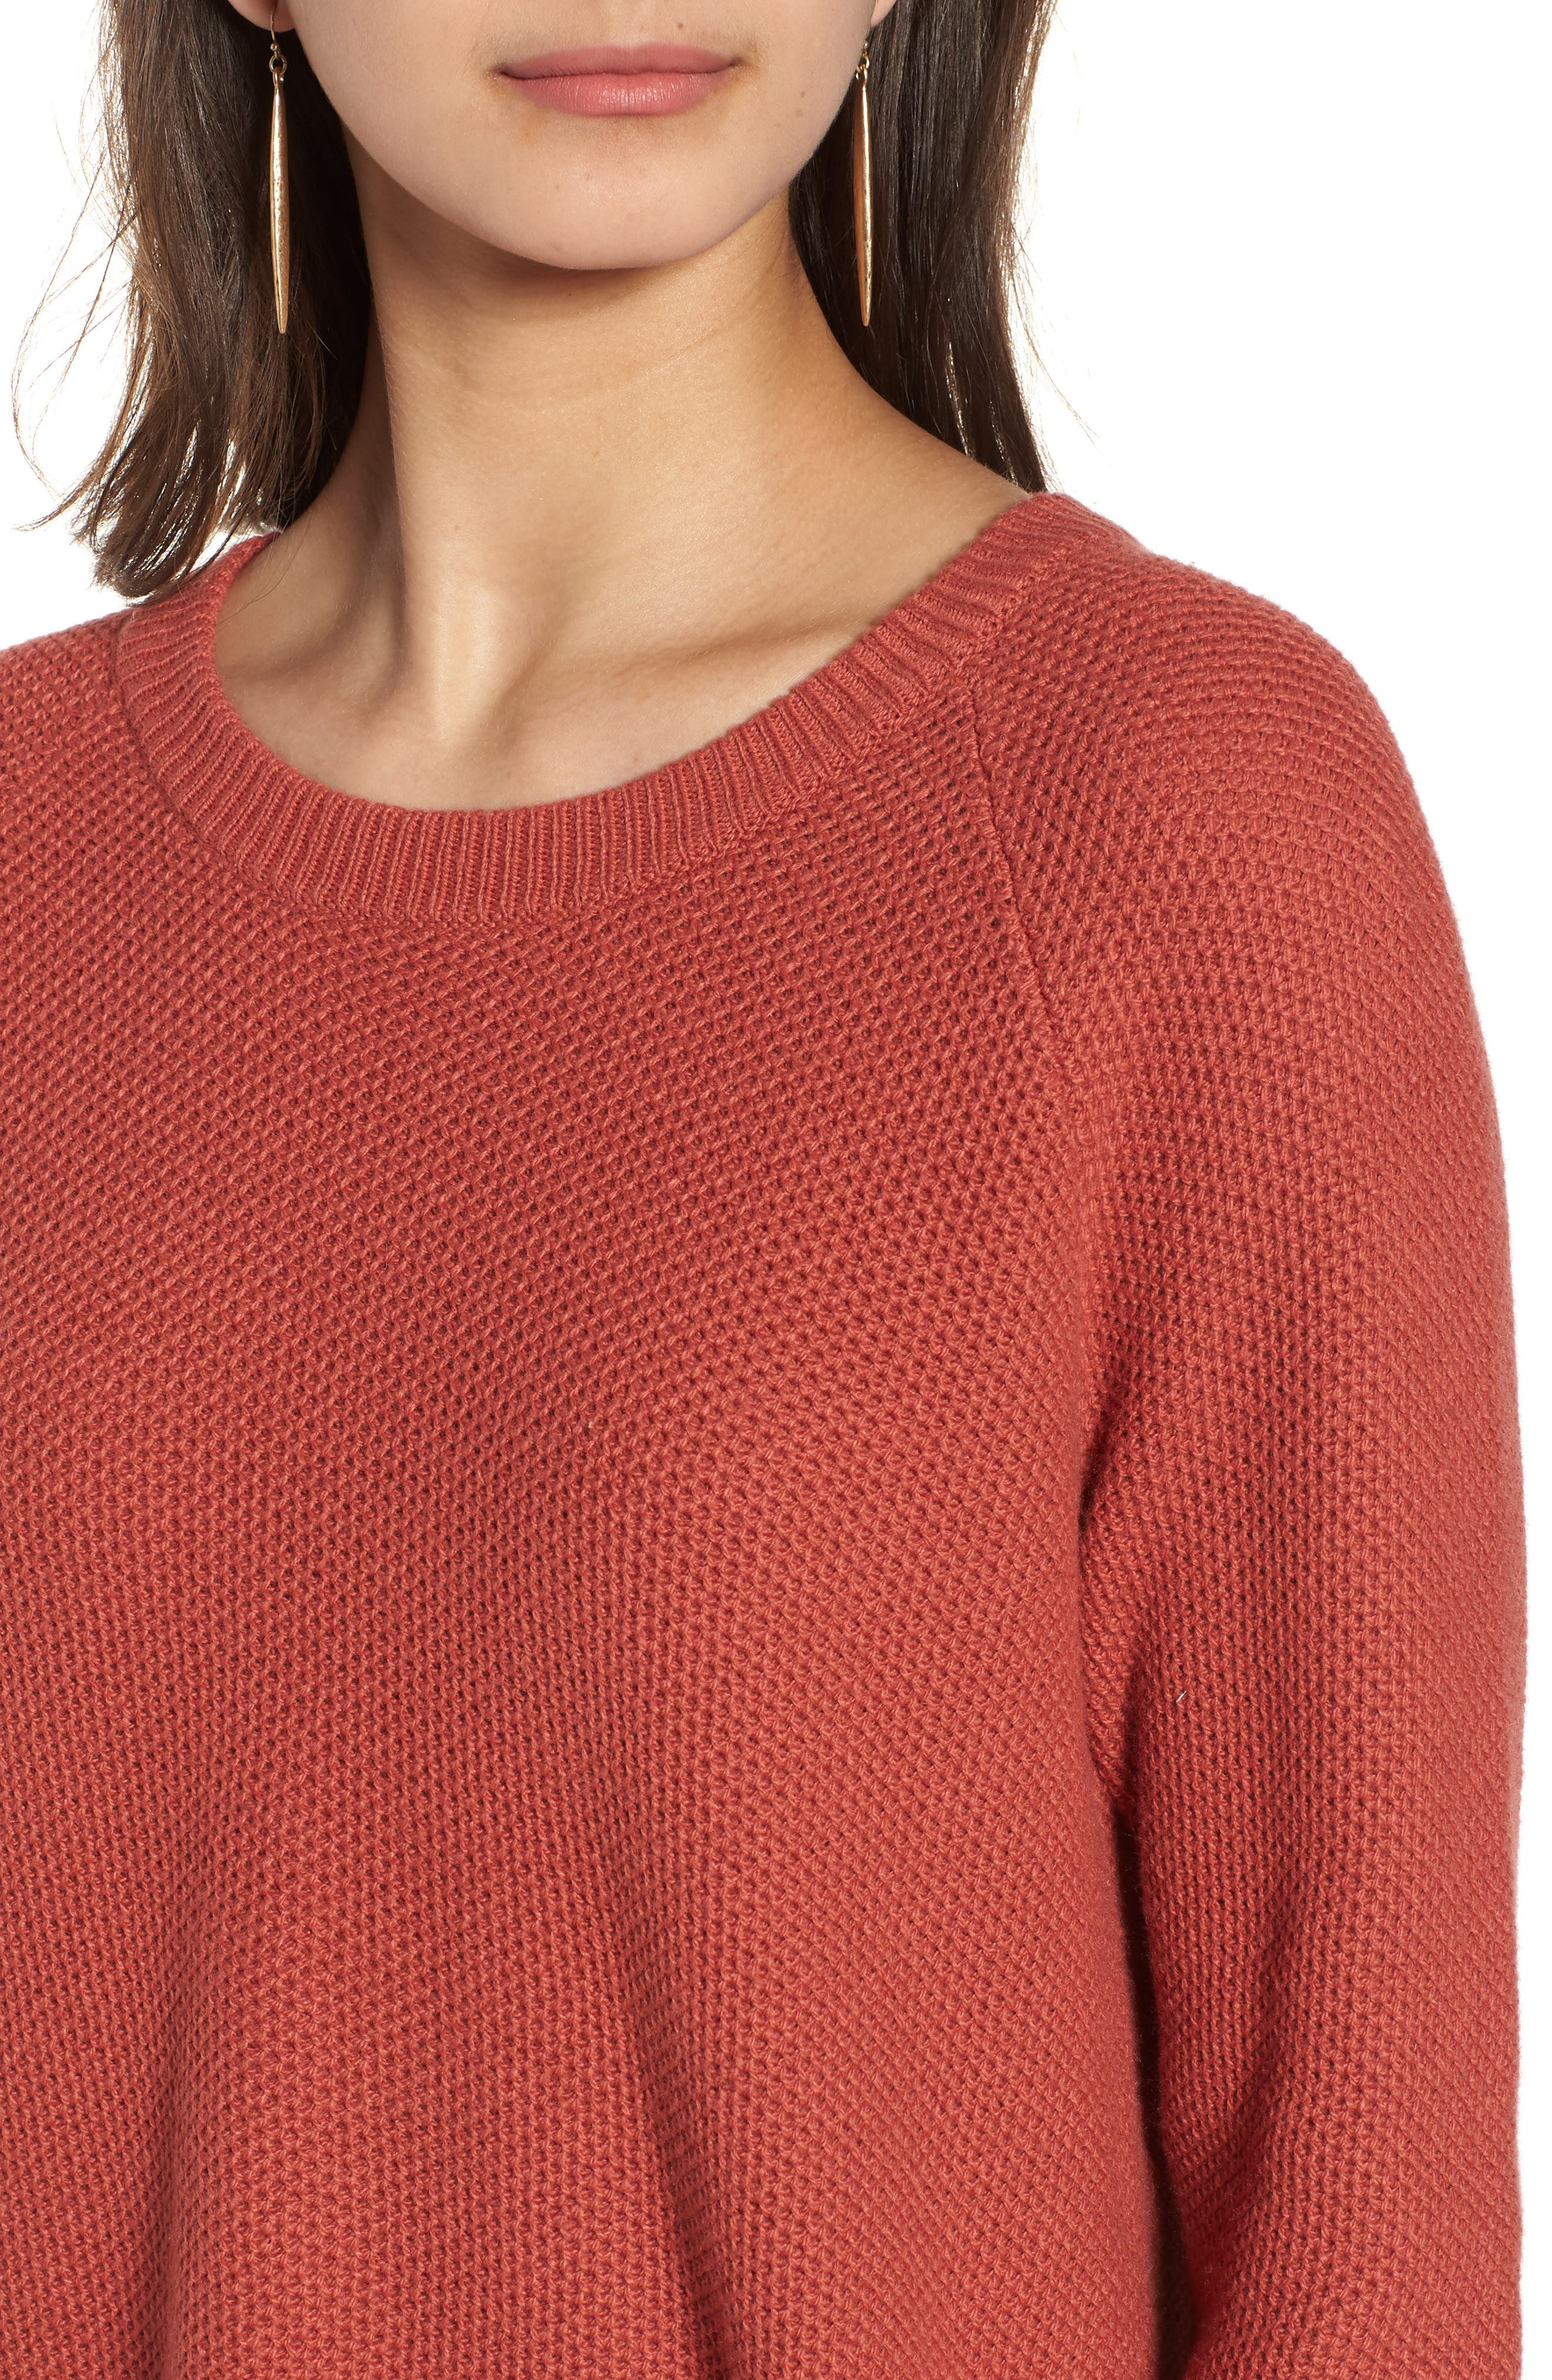 Province Cross Back Knit Pullover,                             Alternate thumbnail 4, color,                             Spiced Rose